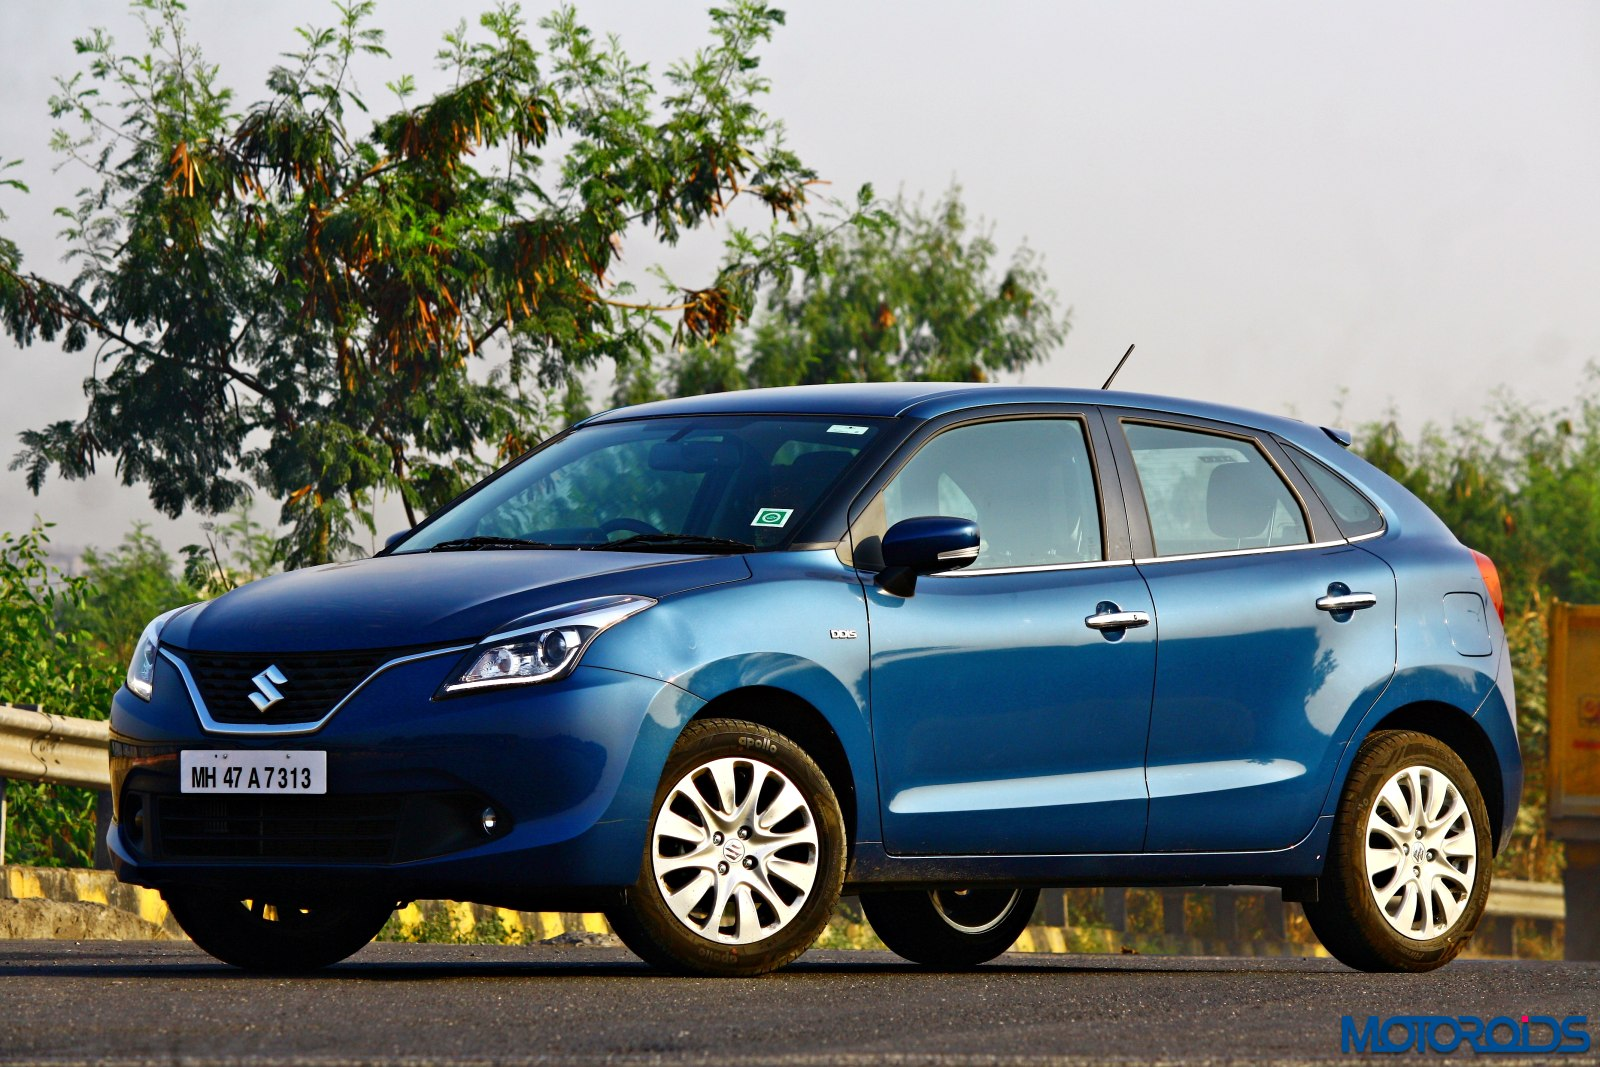 maruti suzuki baleno cvt zeta variant launched for inr lakh motoroids. Black Bedroom Furniture Sets. Home Design Ideas